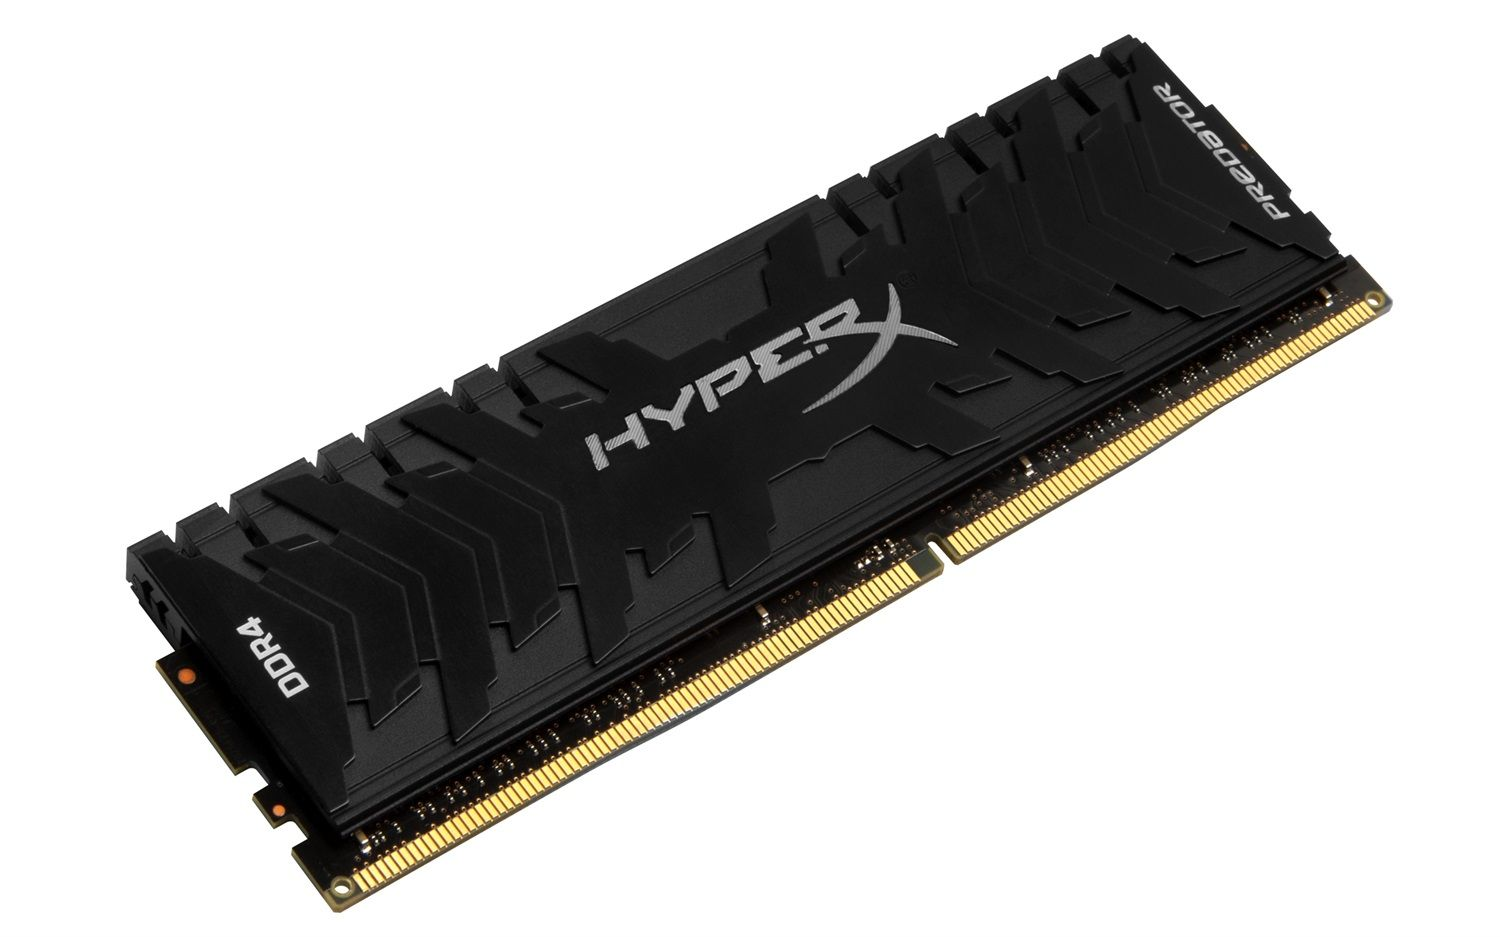 Kingston HX430C15PB3K2/8